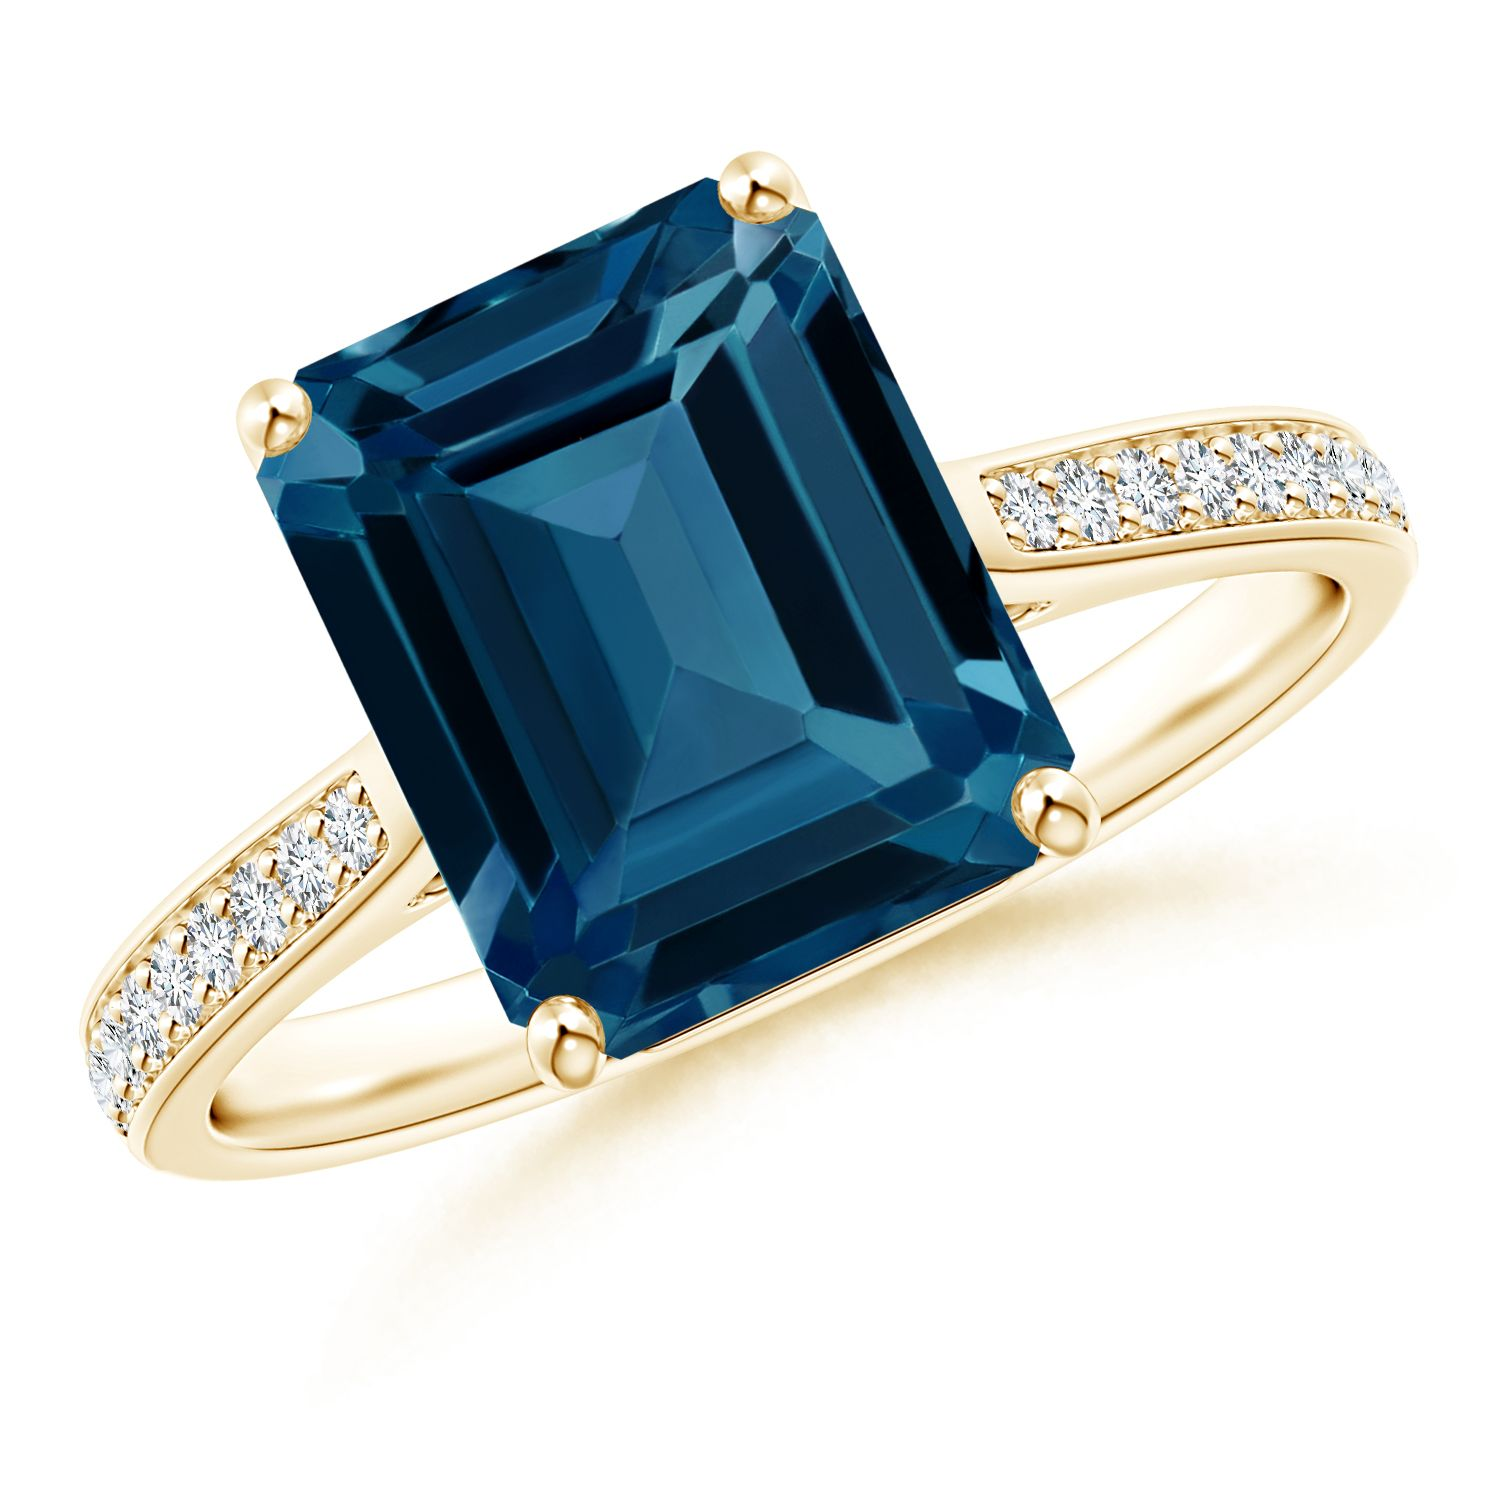 Angara Emerald-Cut London Blue Topaz Ring with Trio Diamonds cANgeb